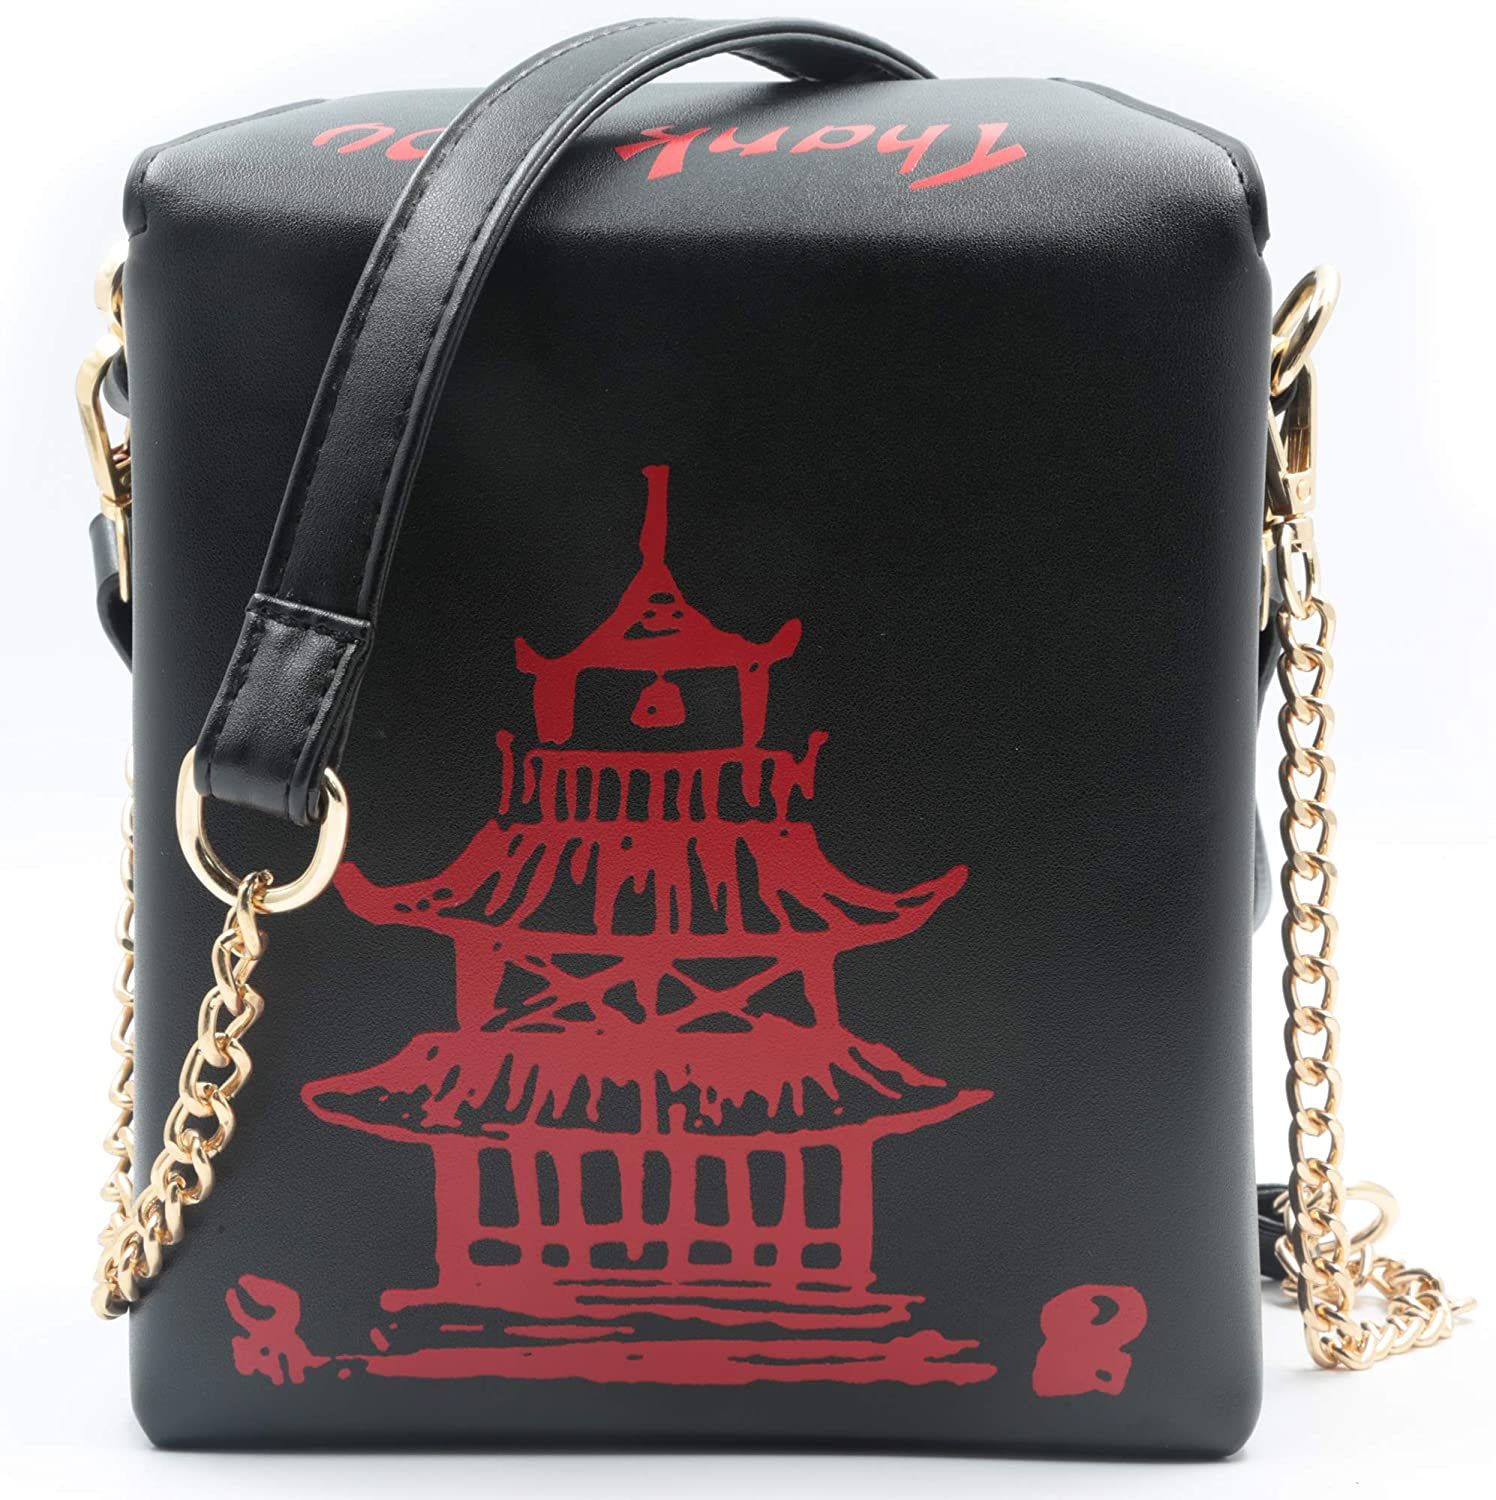 QiMing Tower Print Crossbody Shoulder Bag,Pu Chinese Takeout Box Totes Purse for Women